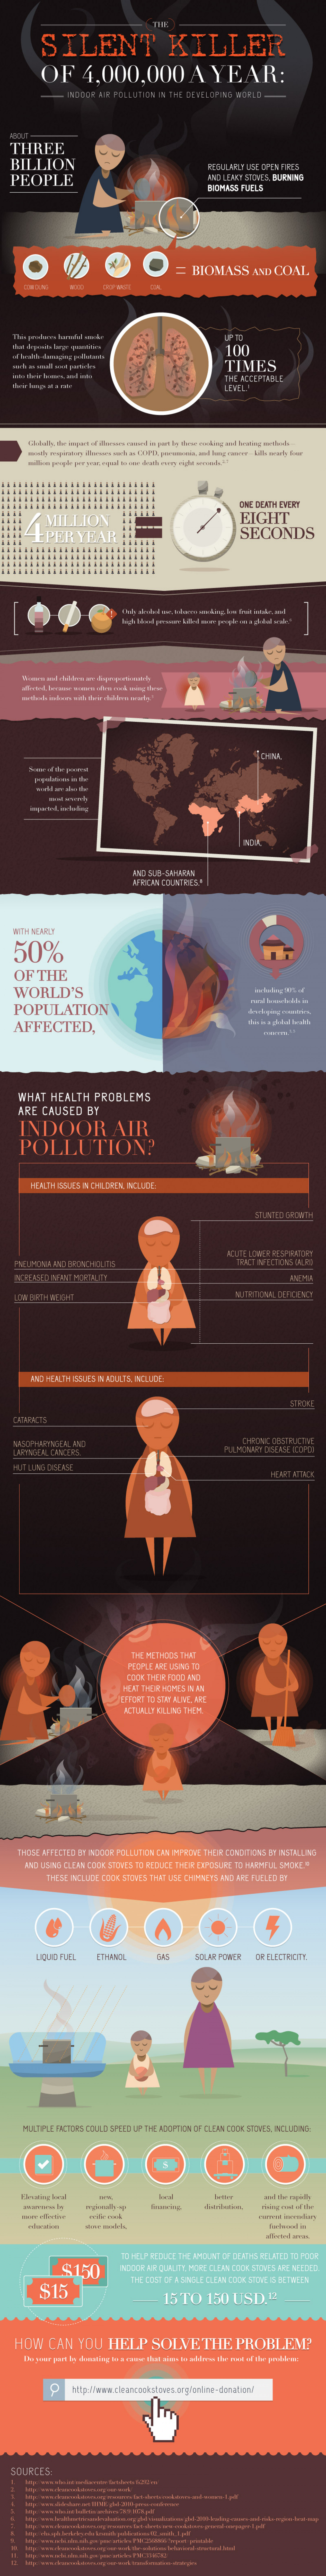 Do you know what kills 4 million people every year? Infographic